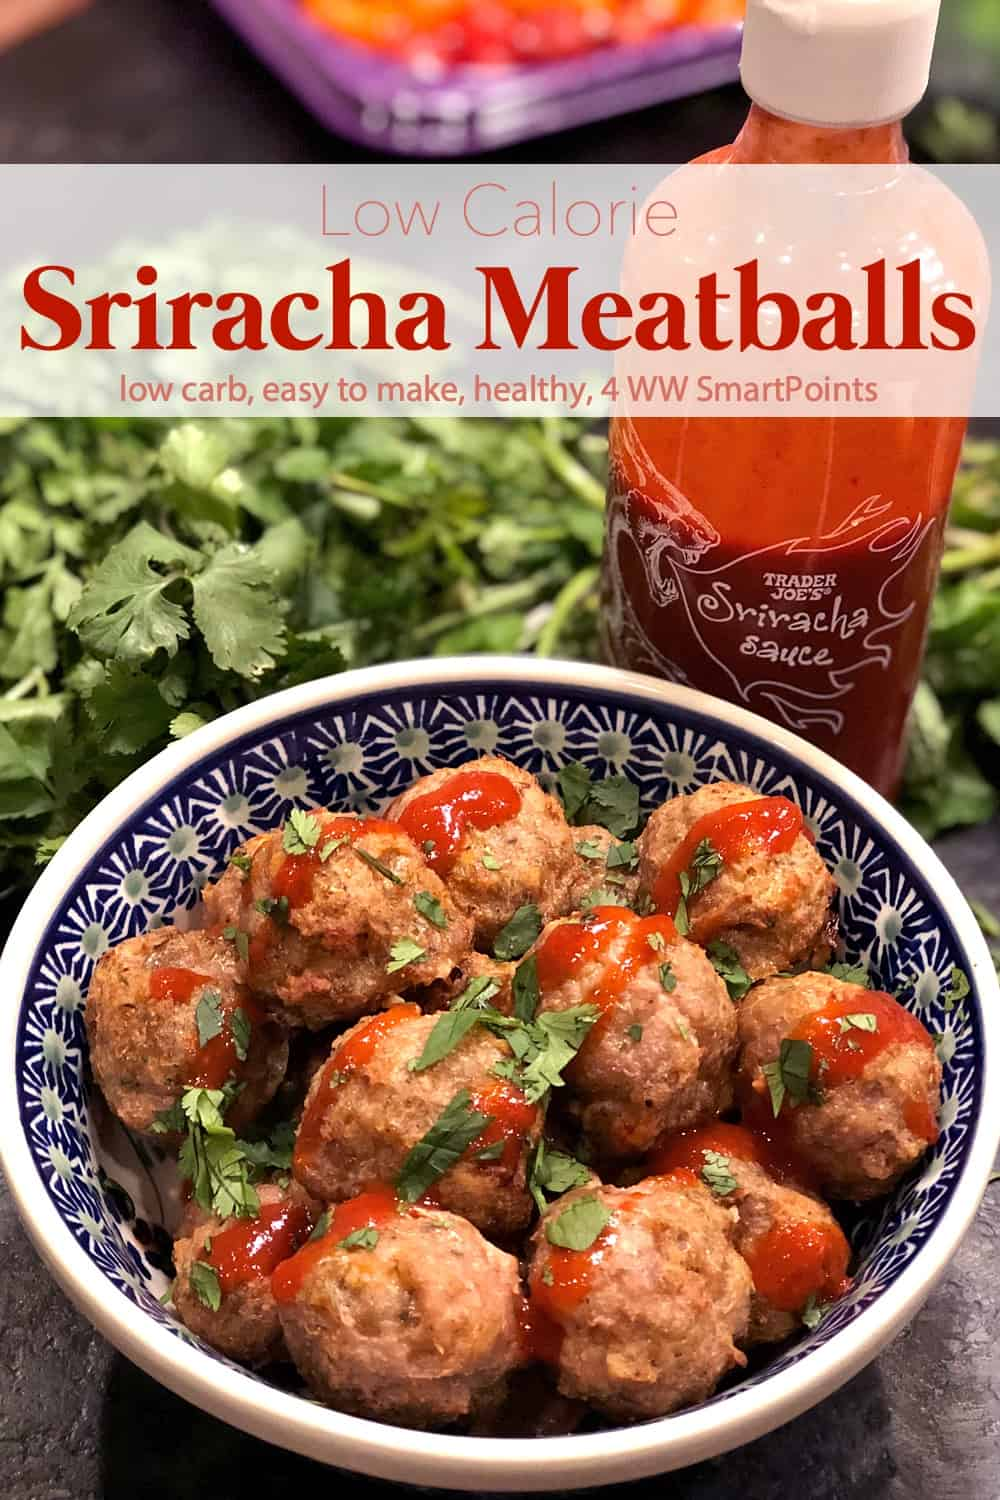 These low calorie Sriracha meatballs are high in flavor and make a delicious high-protein low-carb appetizer or snack! #srirachaturkeymeatballs #srirachameatballs #turkeymeatballs #meatballs #sriracha